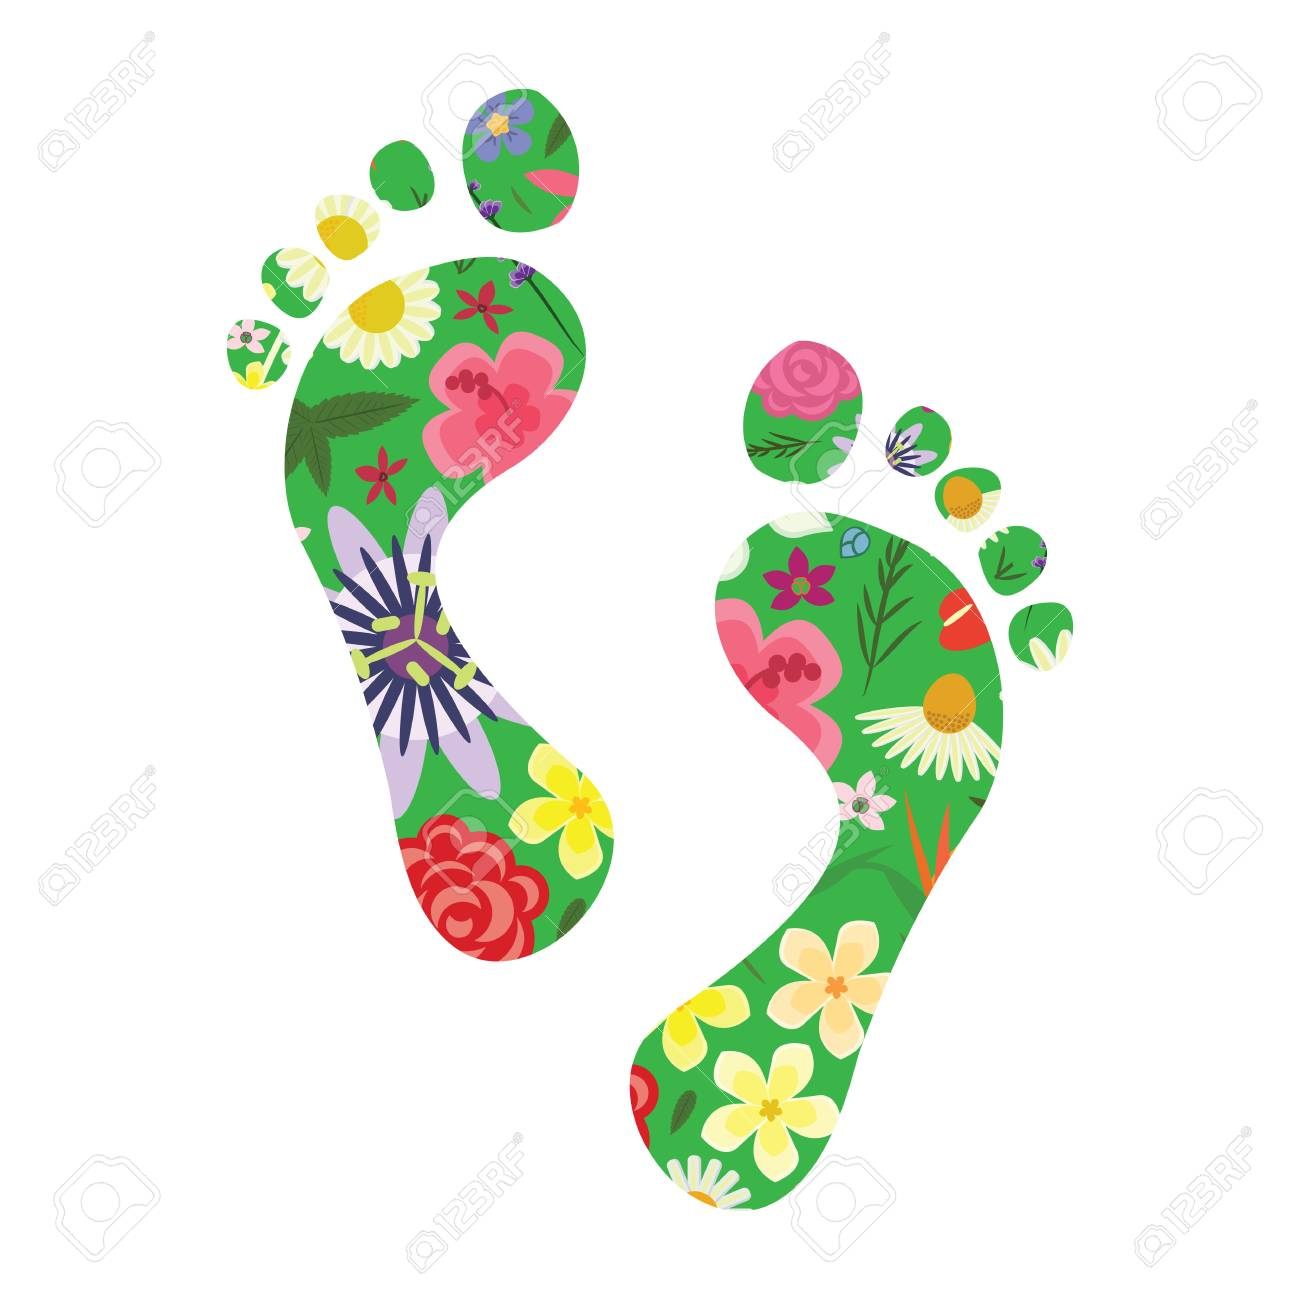 vector illustration of footprints with plants and flowers for nature appreciation and sustainable urban management concept - 120178611